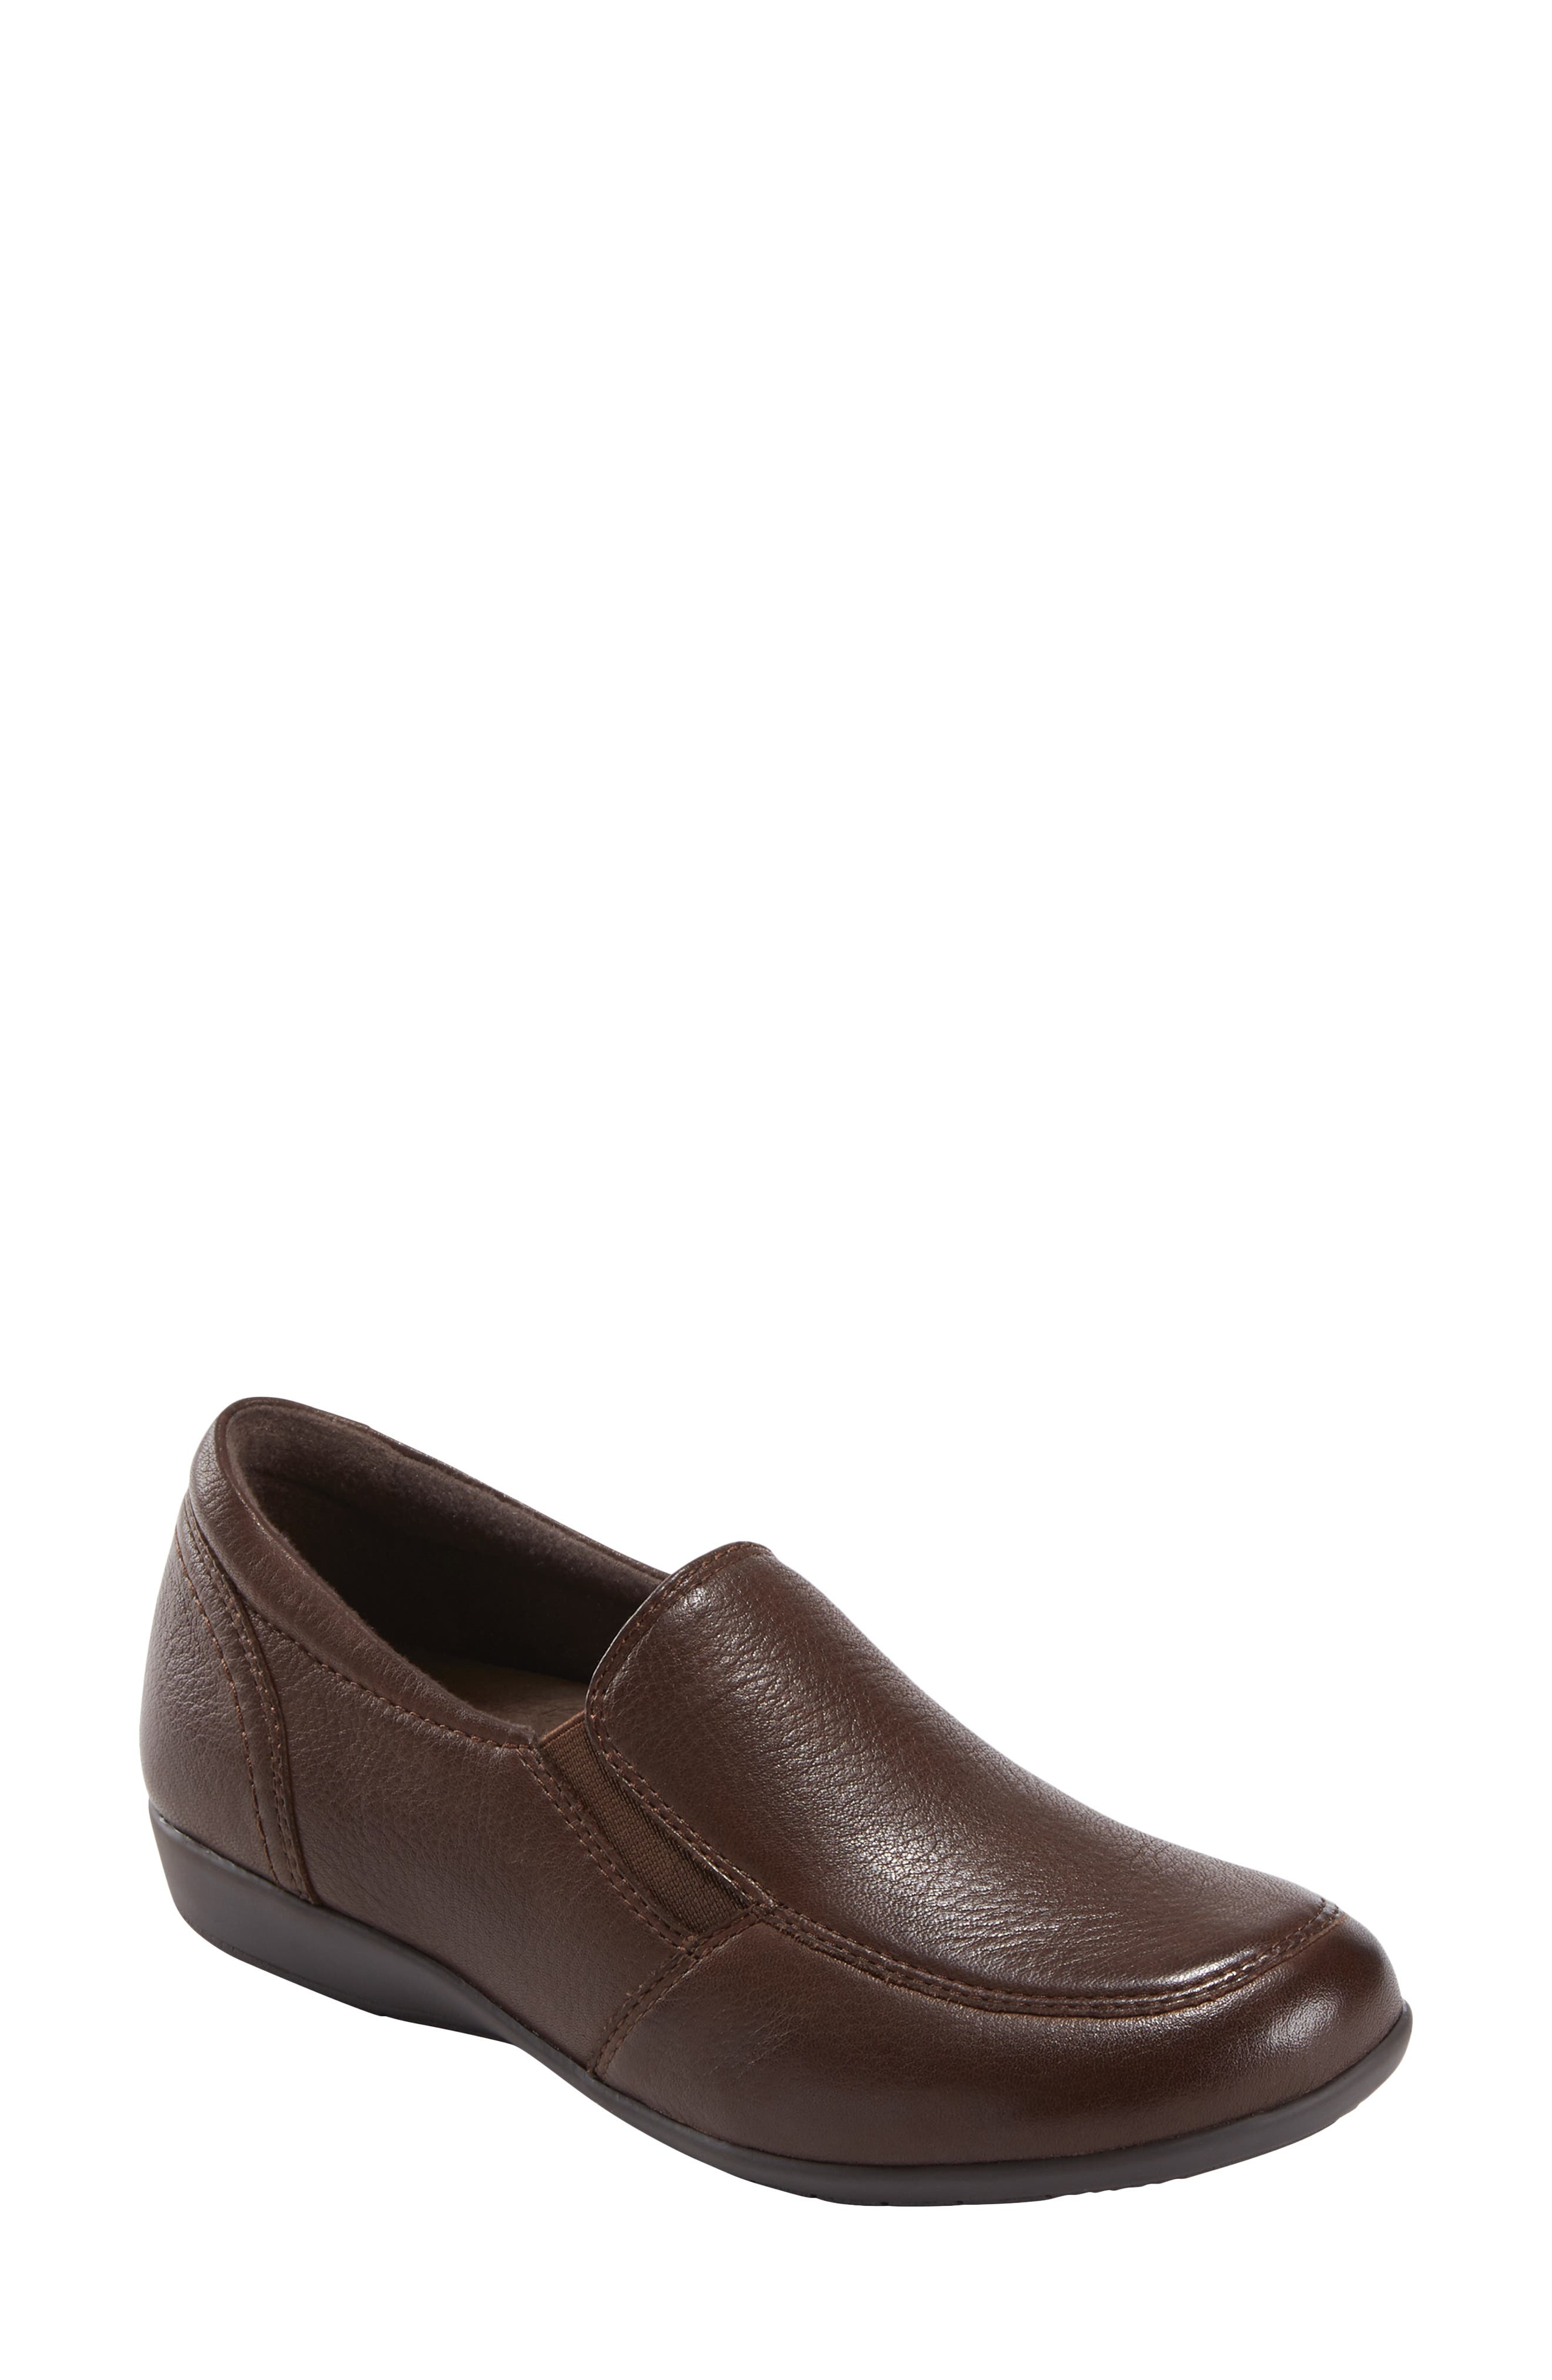 This refined loafer with elastic-gore insets is outfitted with the Powerpath footbed design that reinforces good posture and arch support for all-day comfort. Style Name: Earth Alder Vienna Loafer (Women). Style Number: 6122033. Available in stores.